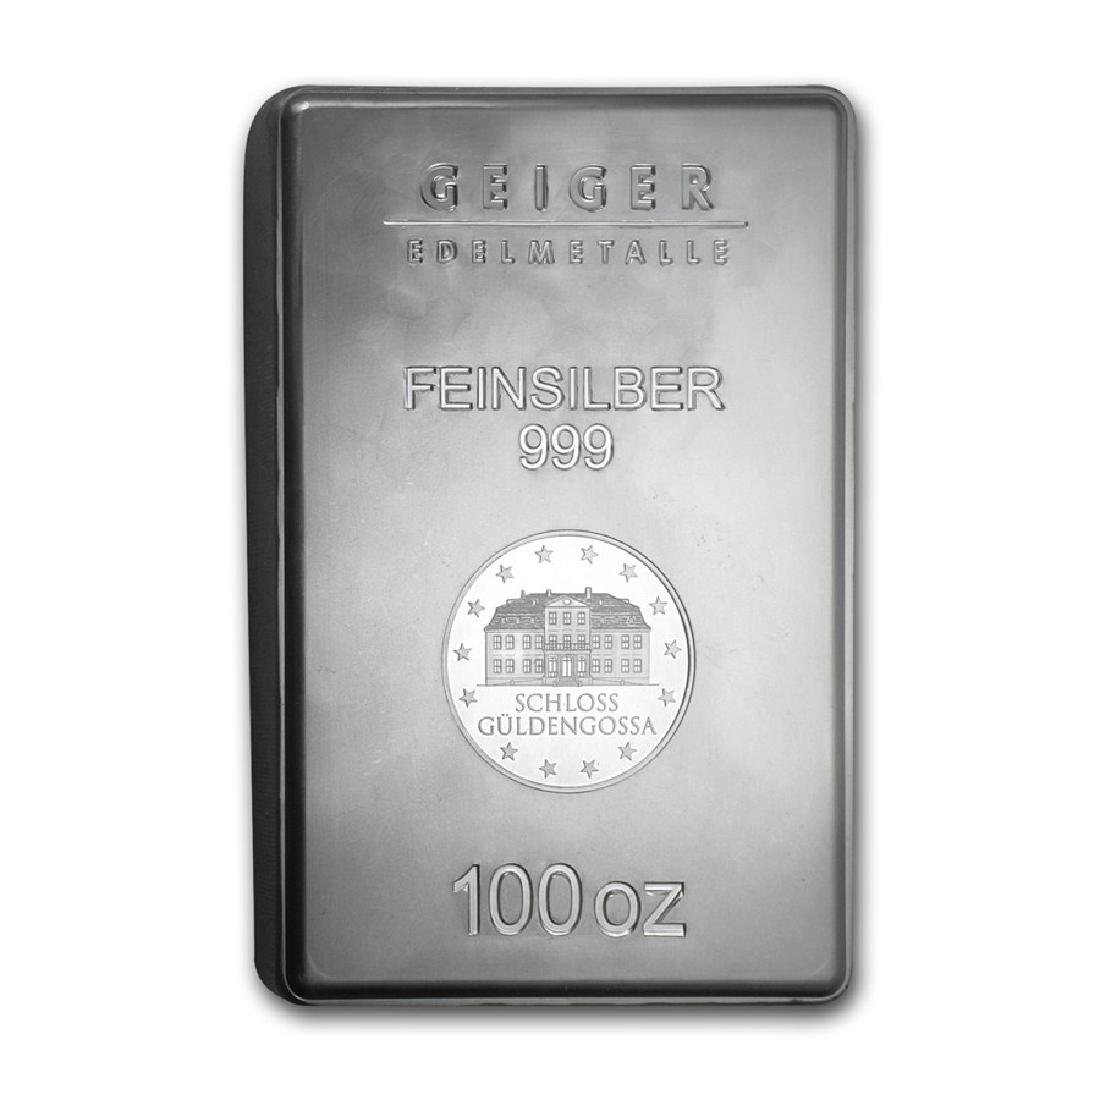 One piece 100 oz 0.999 Fine Silver Bar Geiger Security